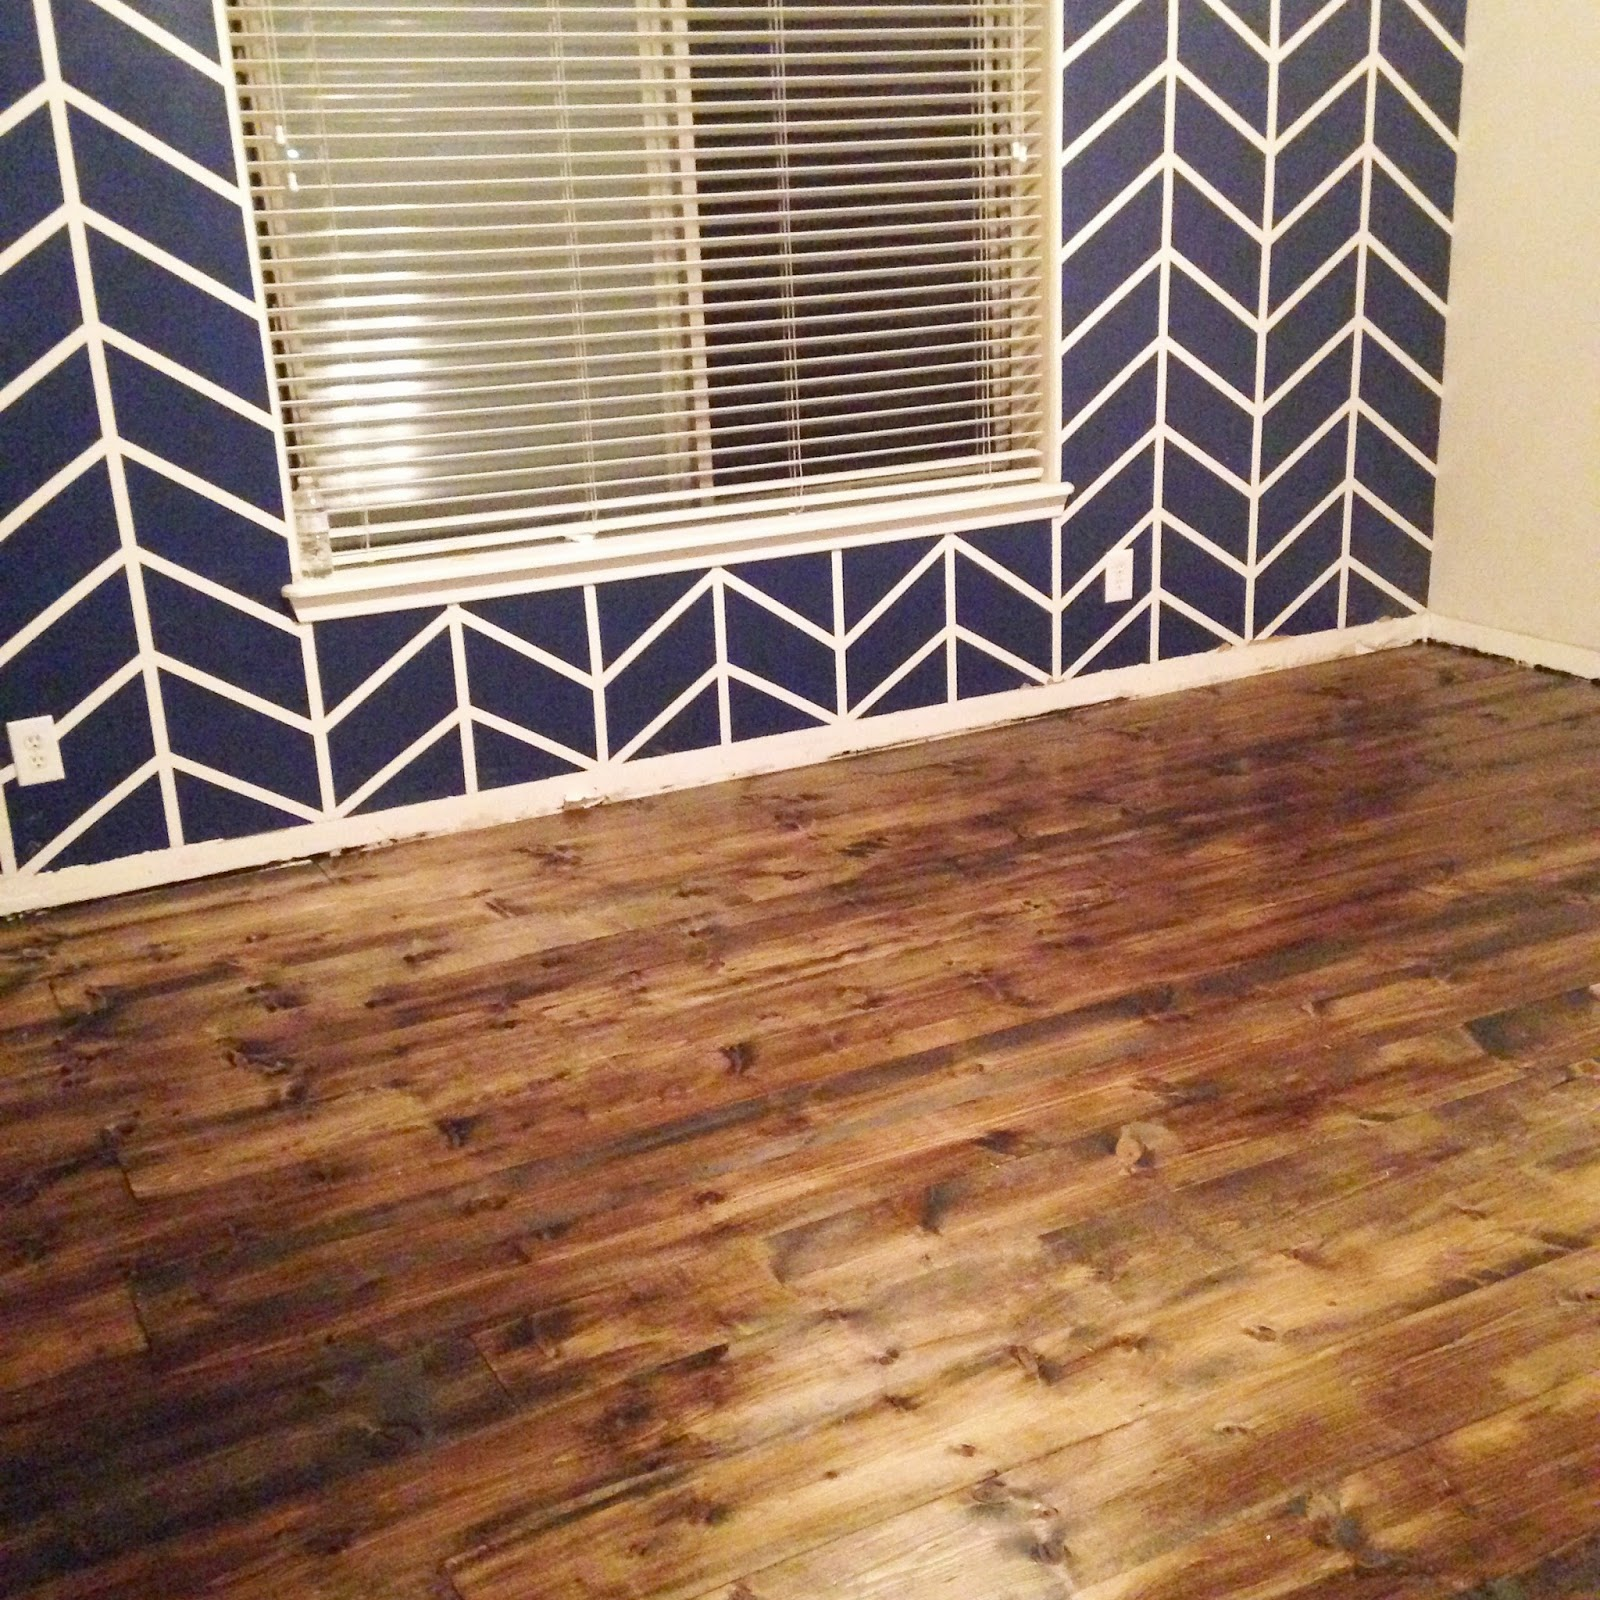 Grand Design: DIY pine plank wood flooring